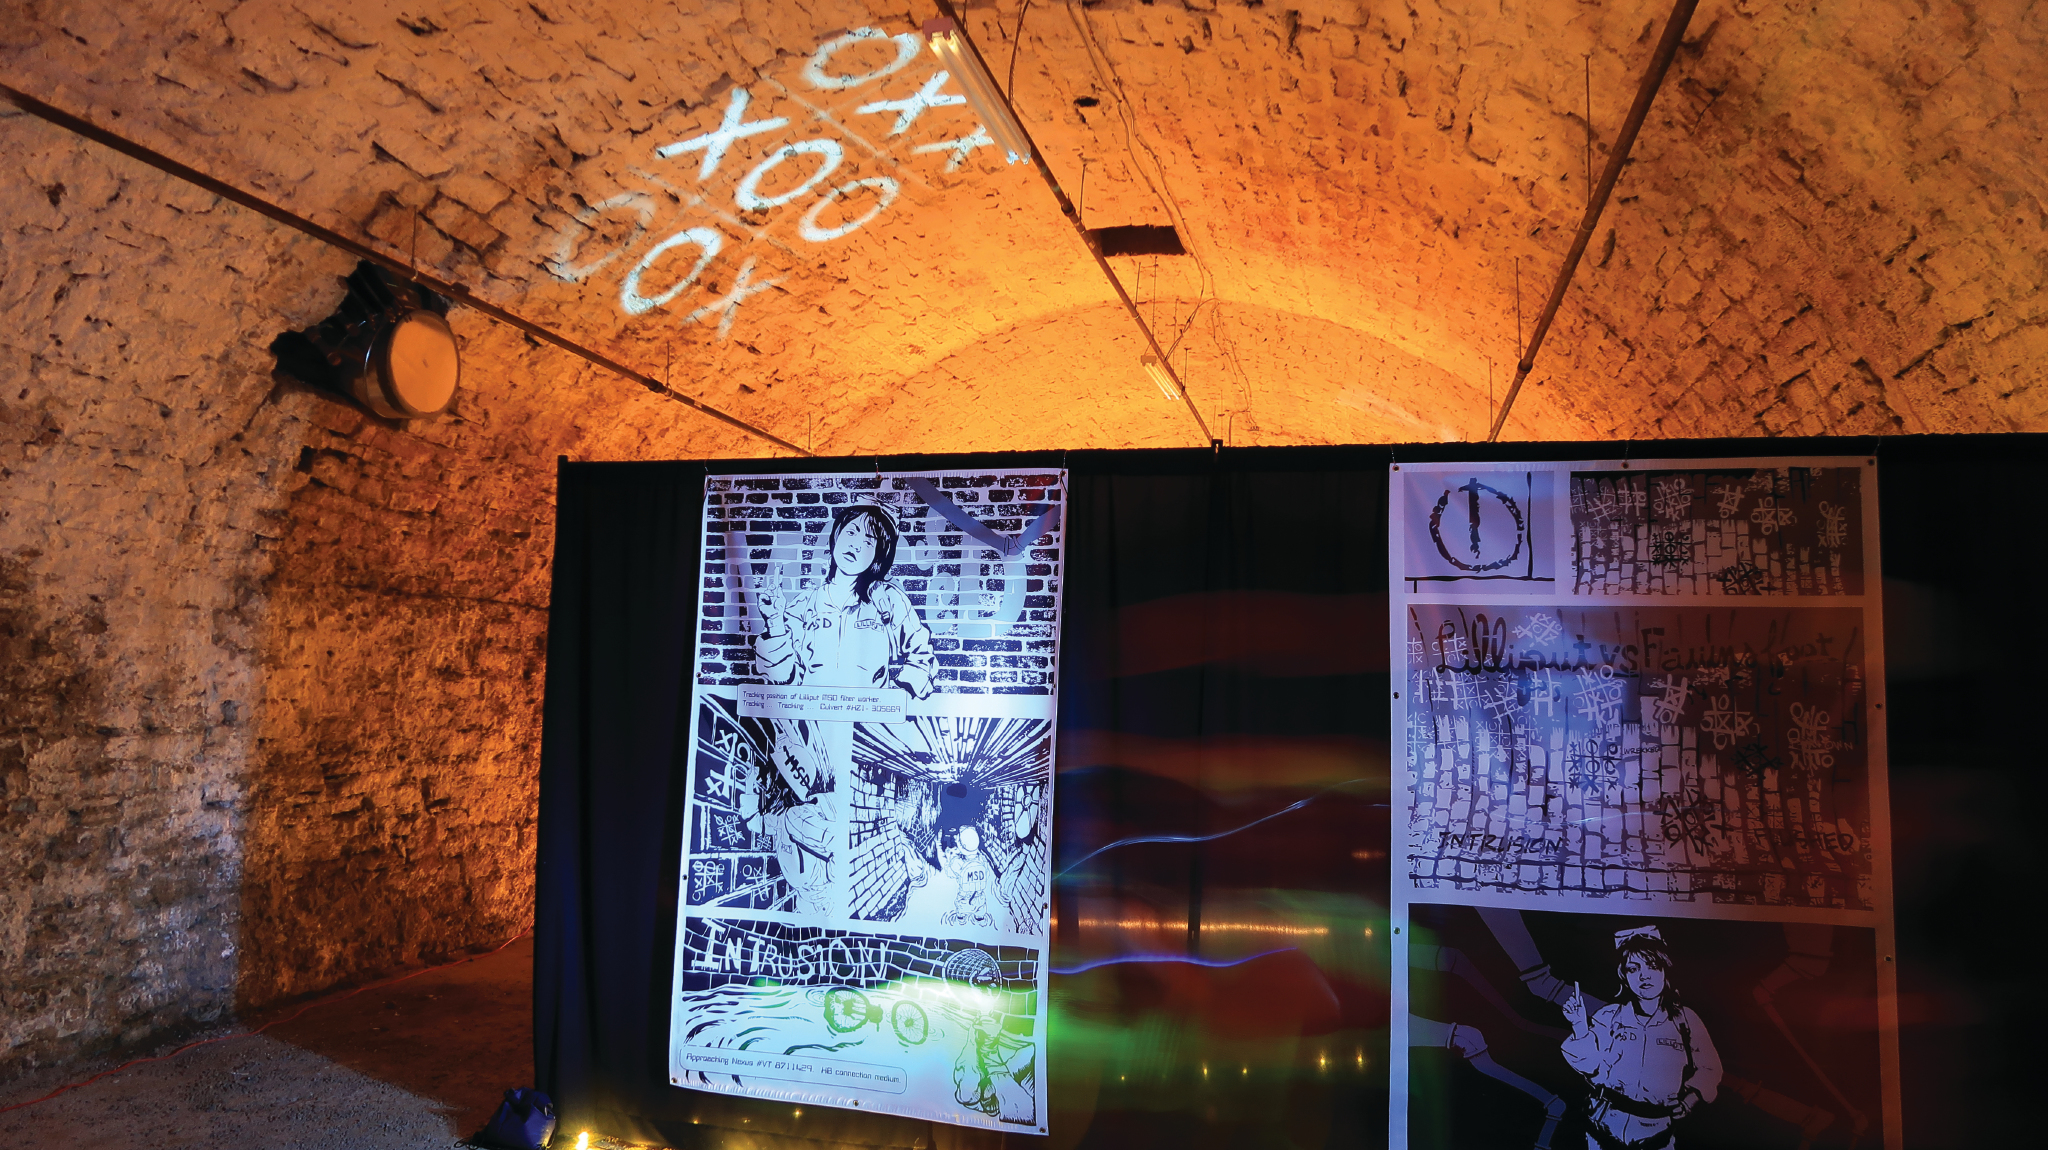 Here's a look at some of the life-sized pages of MeSseD in the underground tunnel tour.